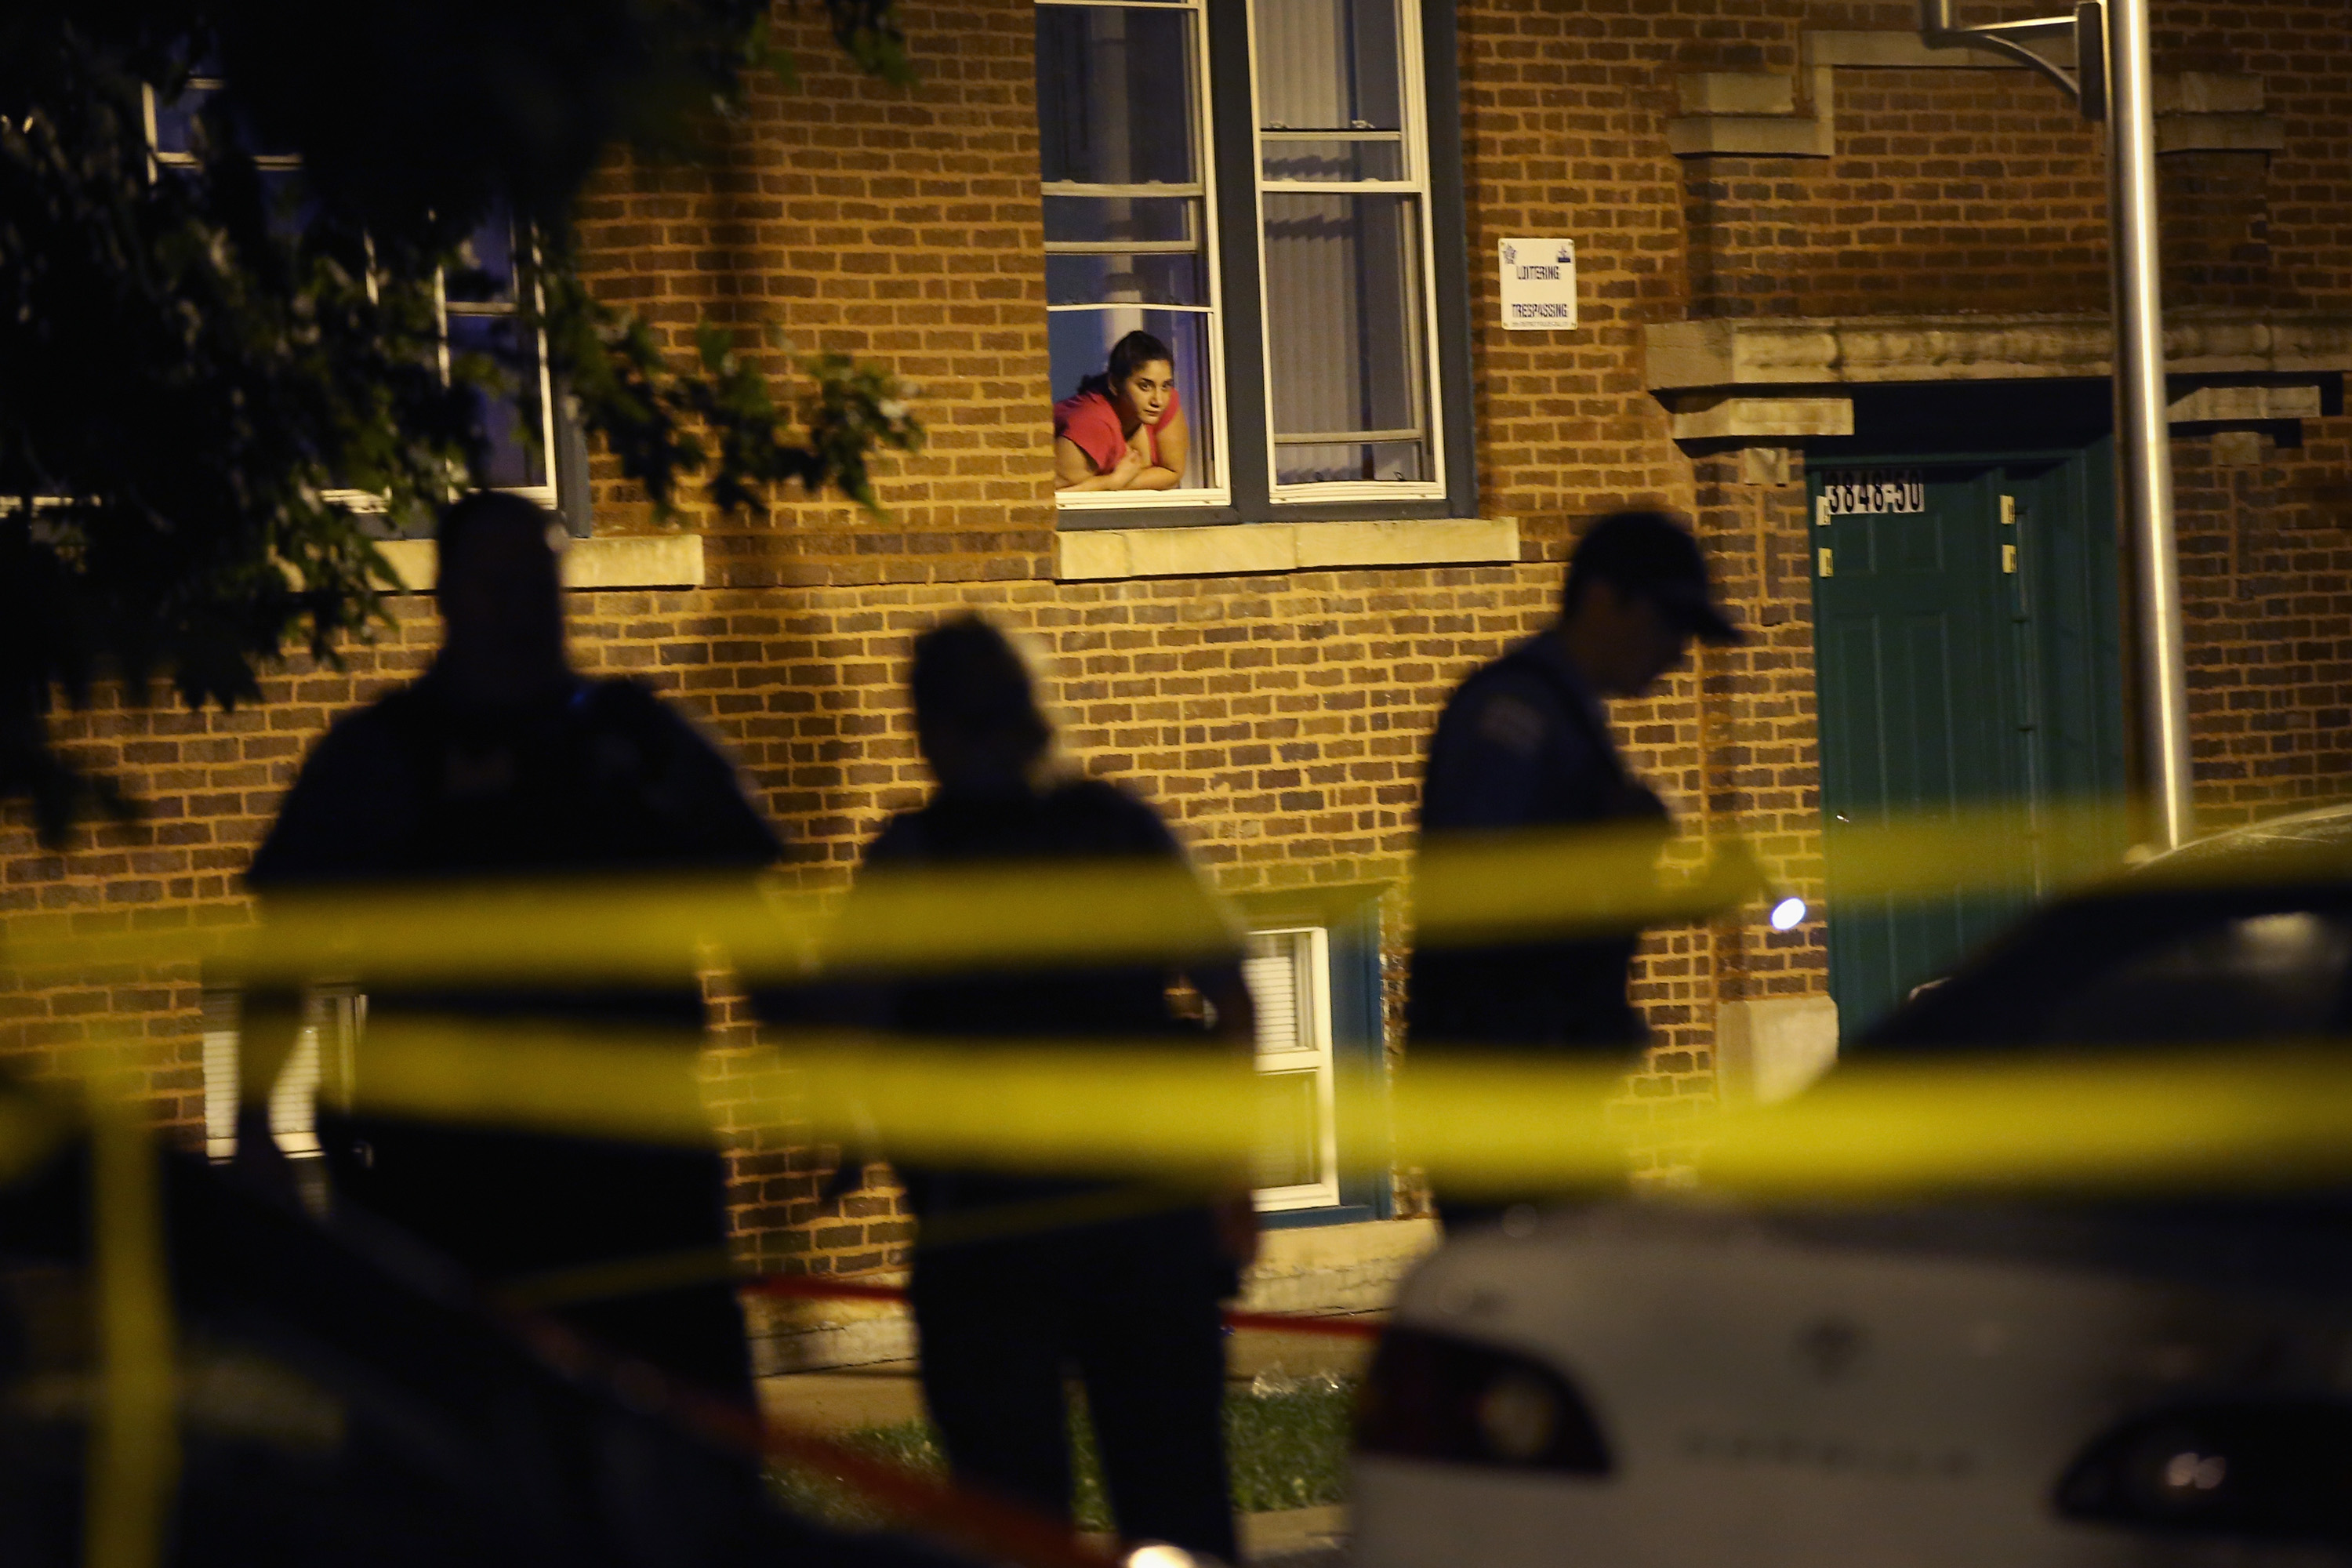 A woman watches from her window as police look for evidence after 20-year-old Carlos Barron was shot and killed in the Humboldt Park neighborhood on July 19, 2013 in Chicago, Illinois. Photo by Scott Olson/Getty Images)